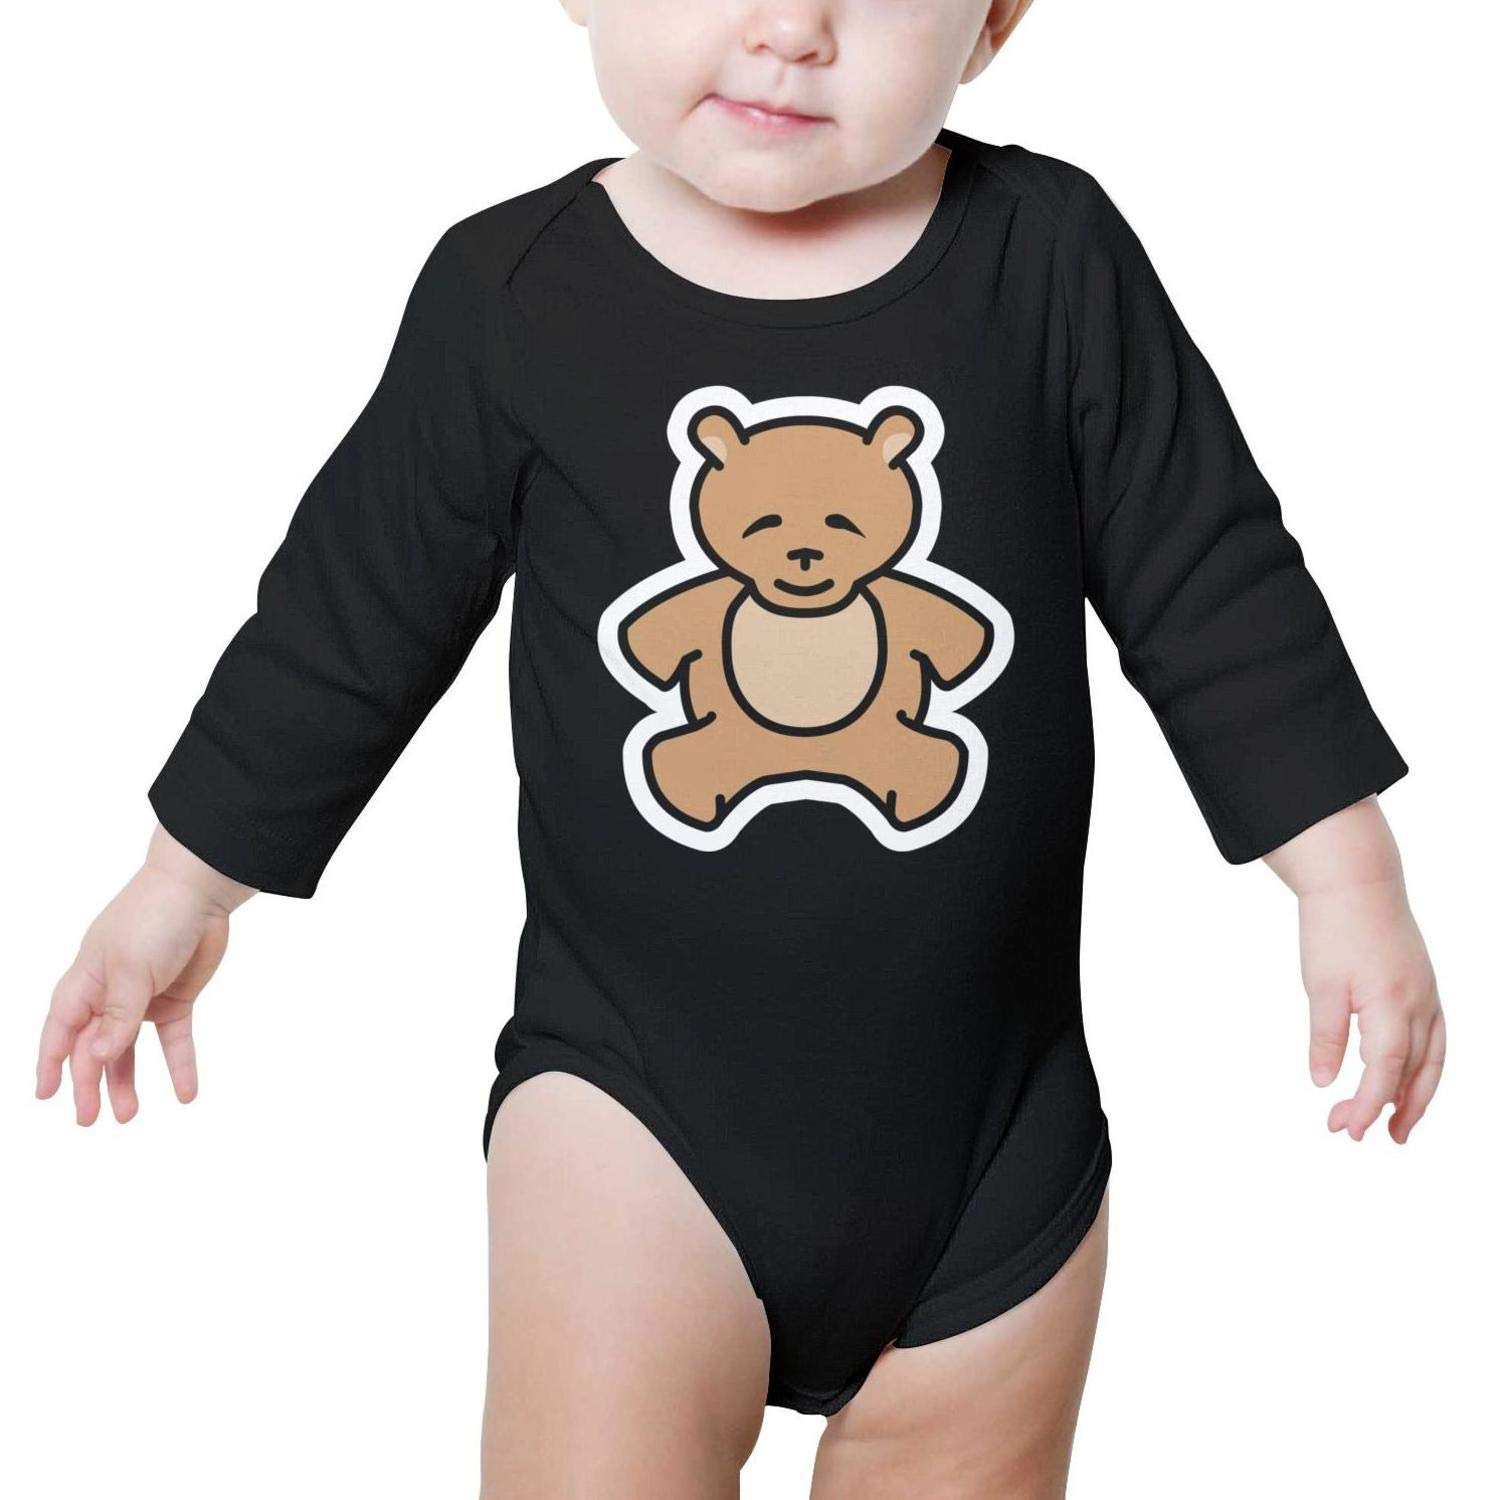 Bodysuits & One-Piece Suits Ngjdshfk Puppies Sticker Cotton Babies AutumnSuit Long Sleeve Baby Onesies Bodysuits Bodysuits & One-Piece Suits